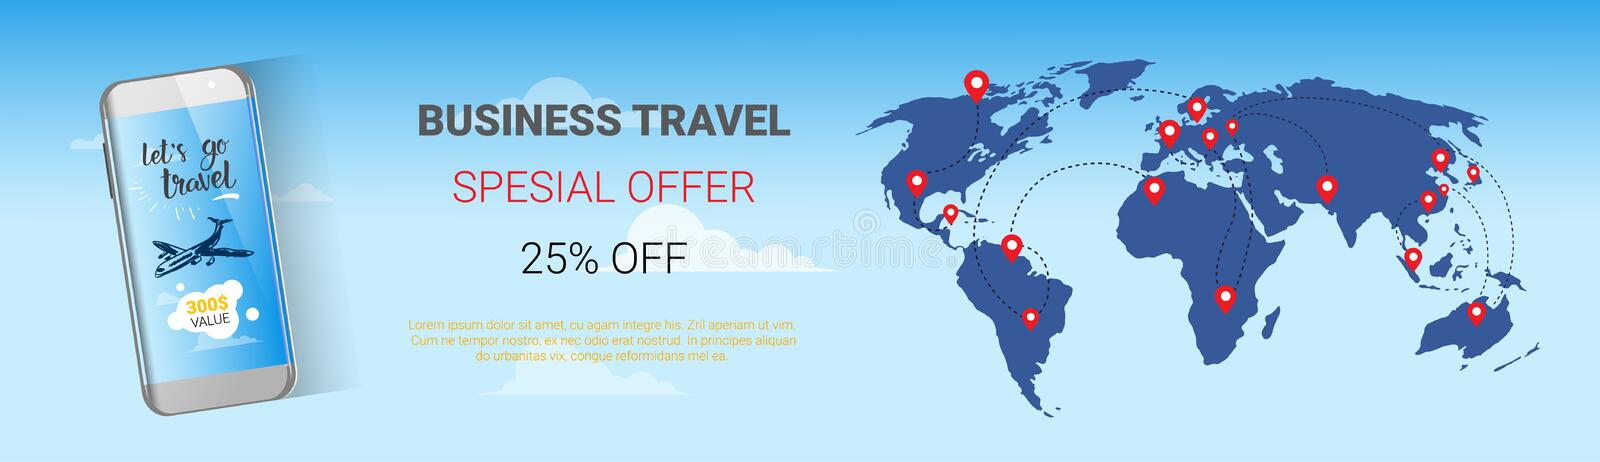 Travel company sale banner business tour special offer template download travel company sale banner business tour special offer template horizontal poster with world map background gumiabroncs Choice Image